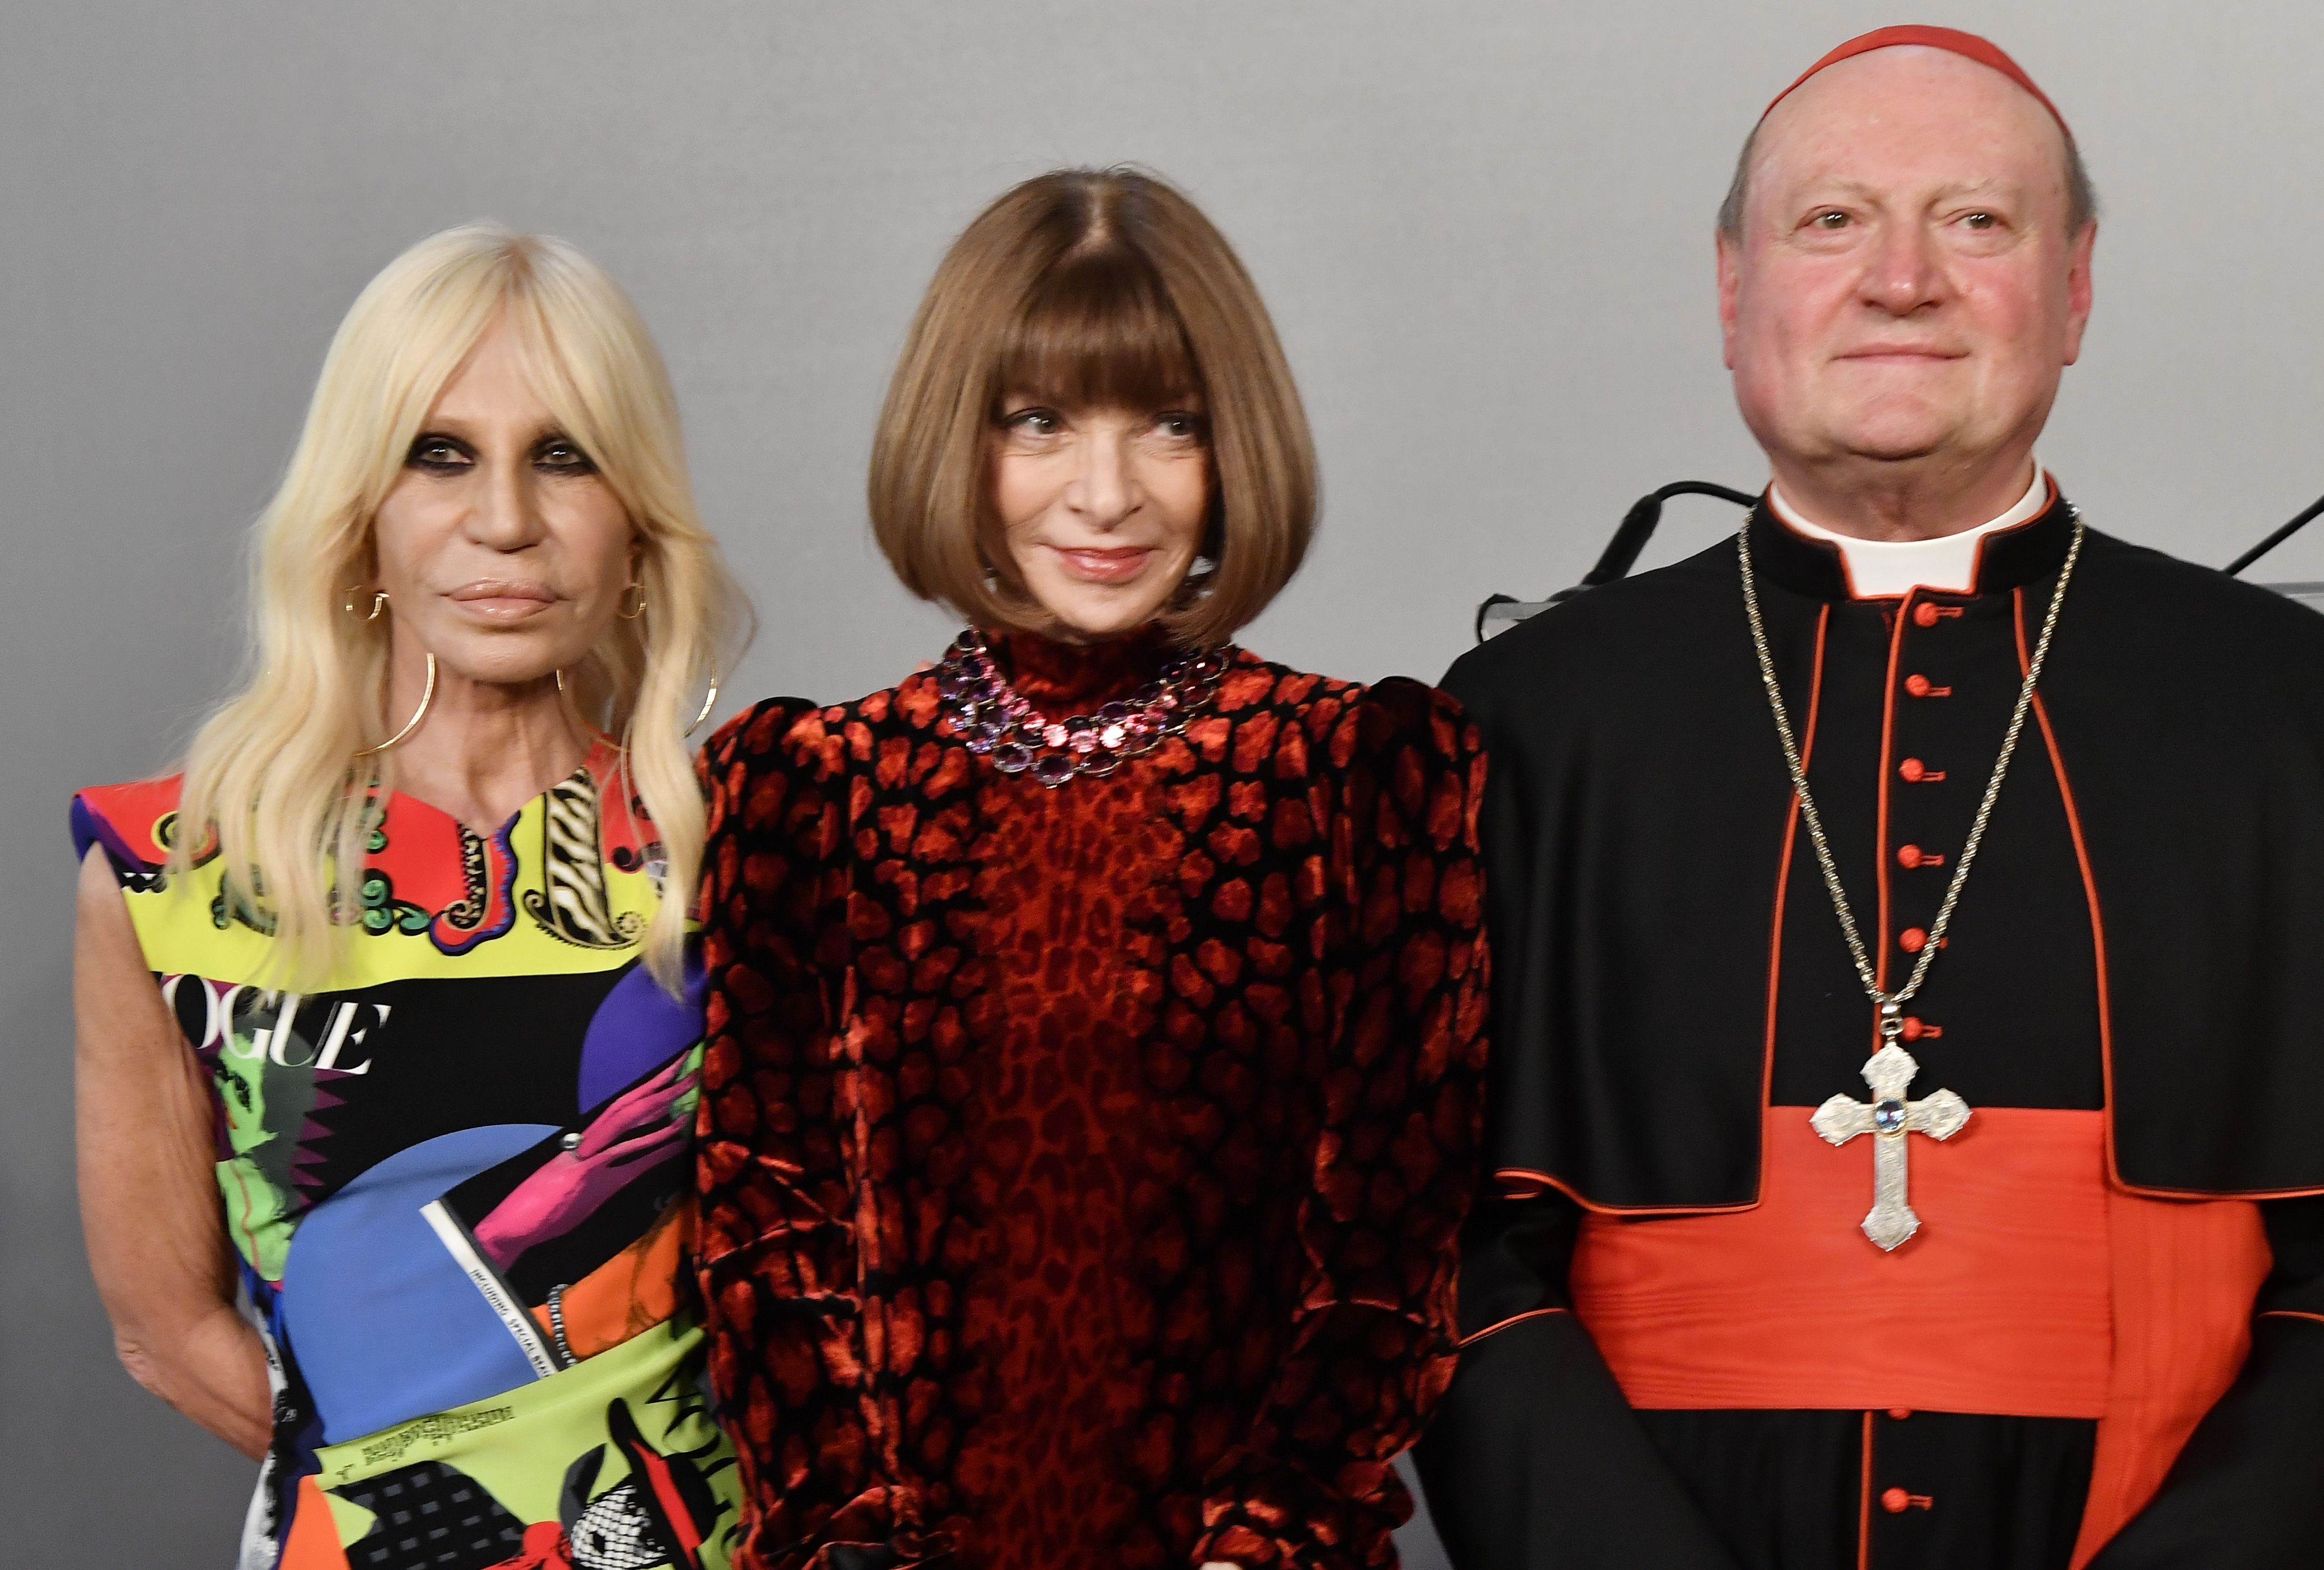 Italian designer Donatella Versace with editor-in-chief of Vogue Anna Wintour and cardinal Gianfranco Ravasi, President of the Vatican Pontifical Council for Culture, at Rome's Palazzo Colonna on Feb. 26, 2018.